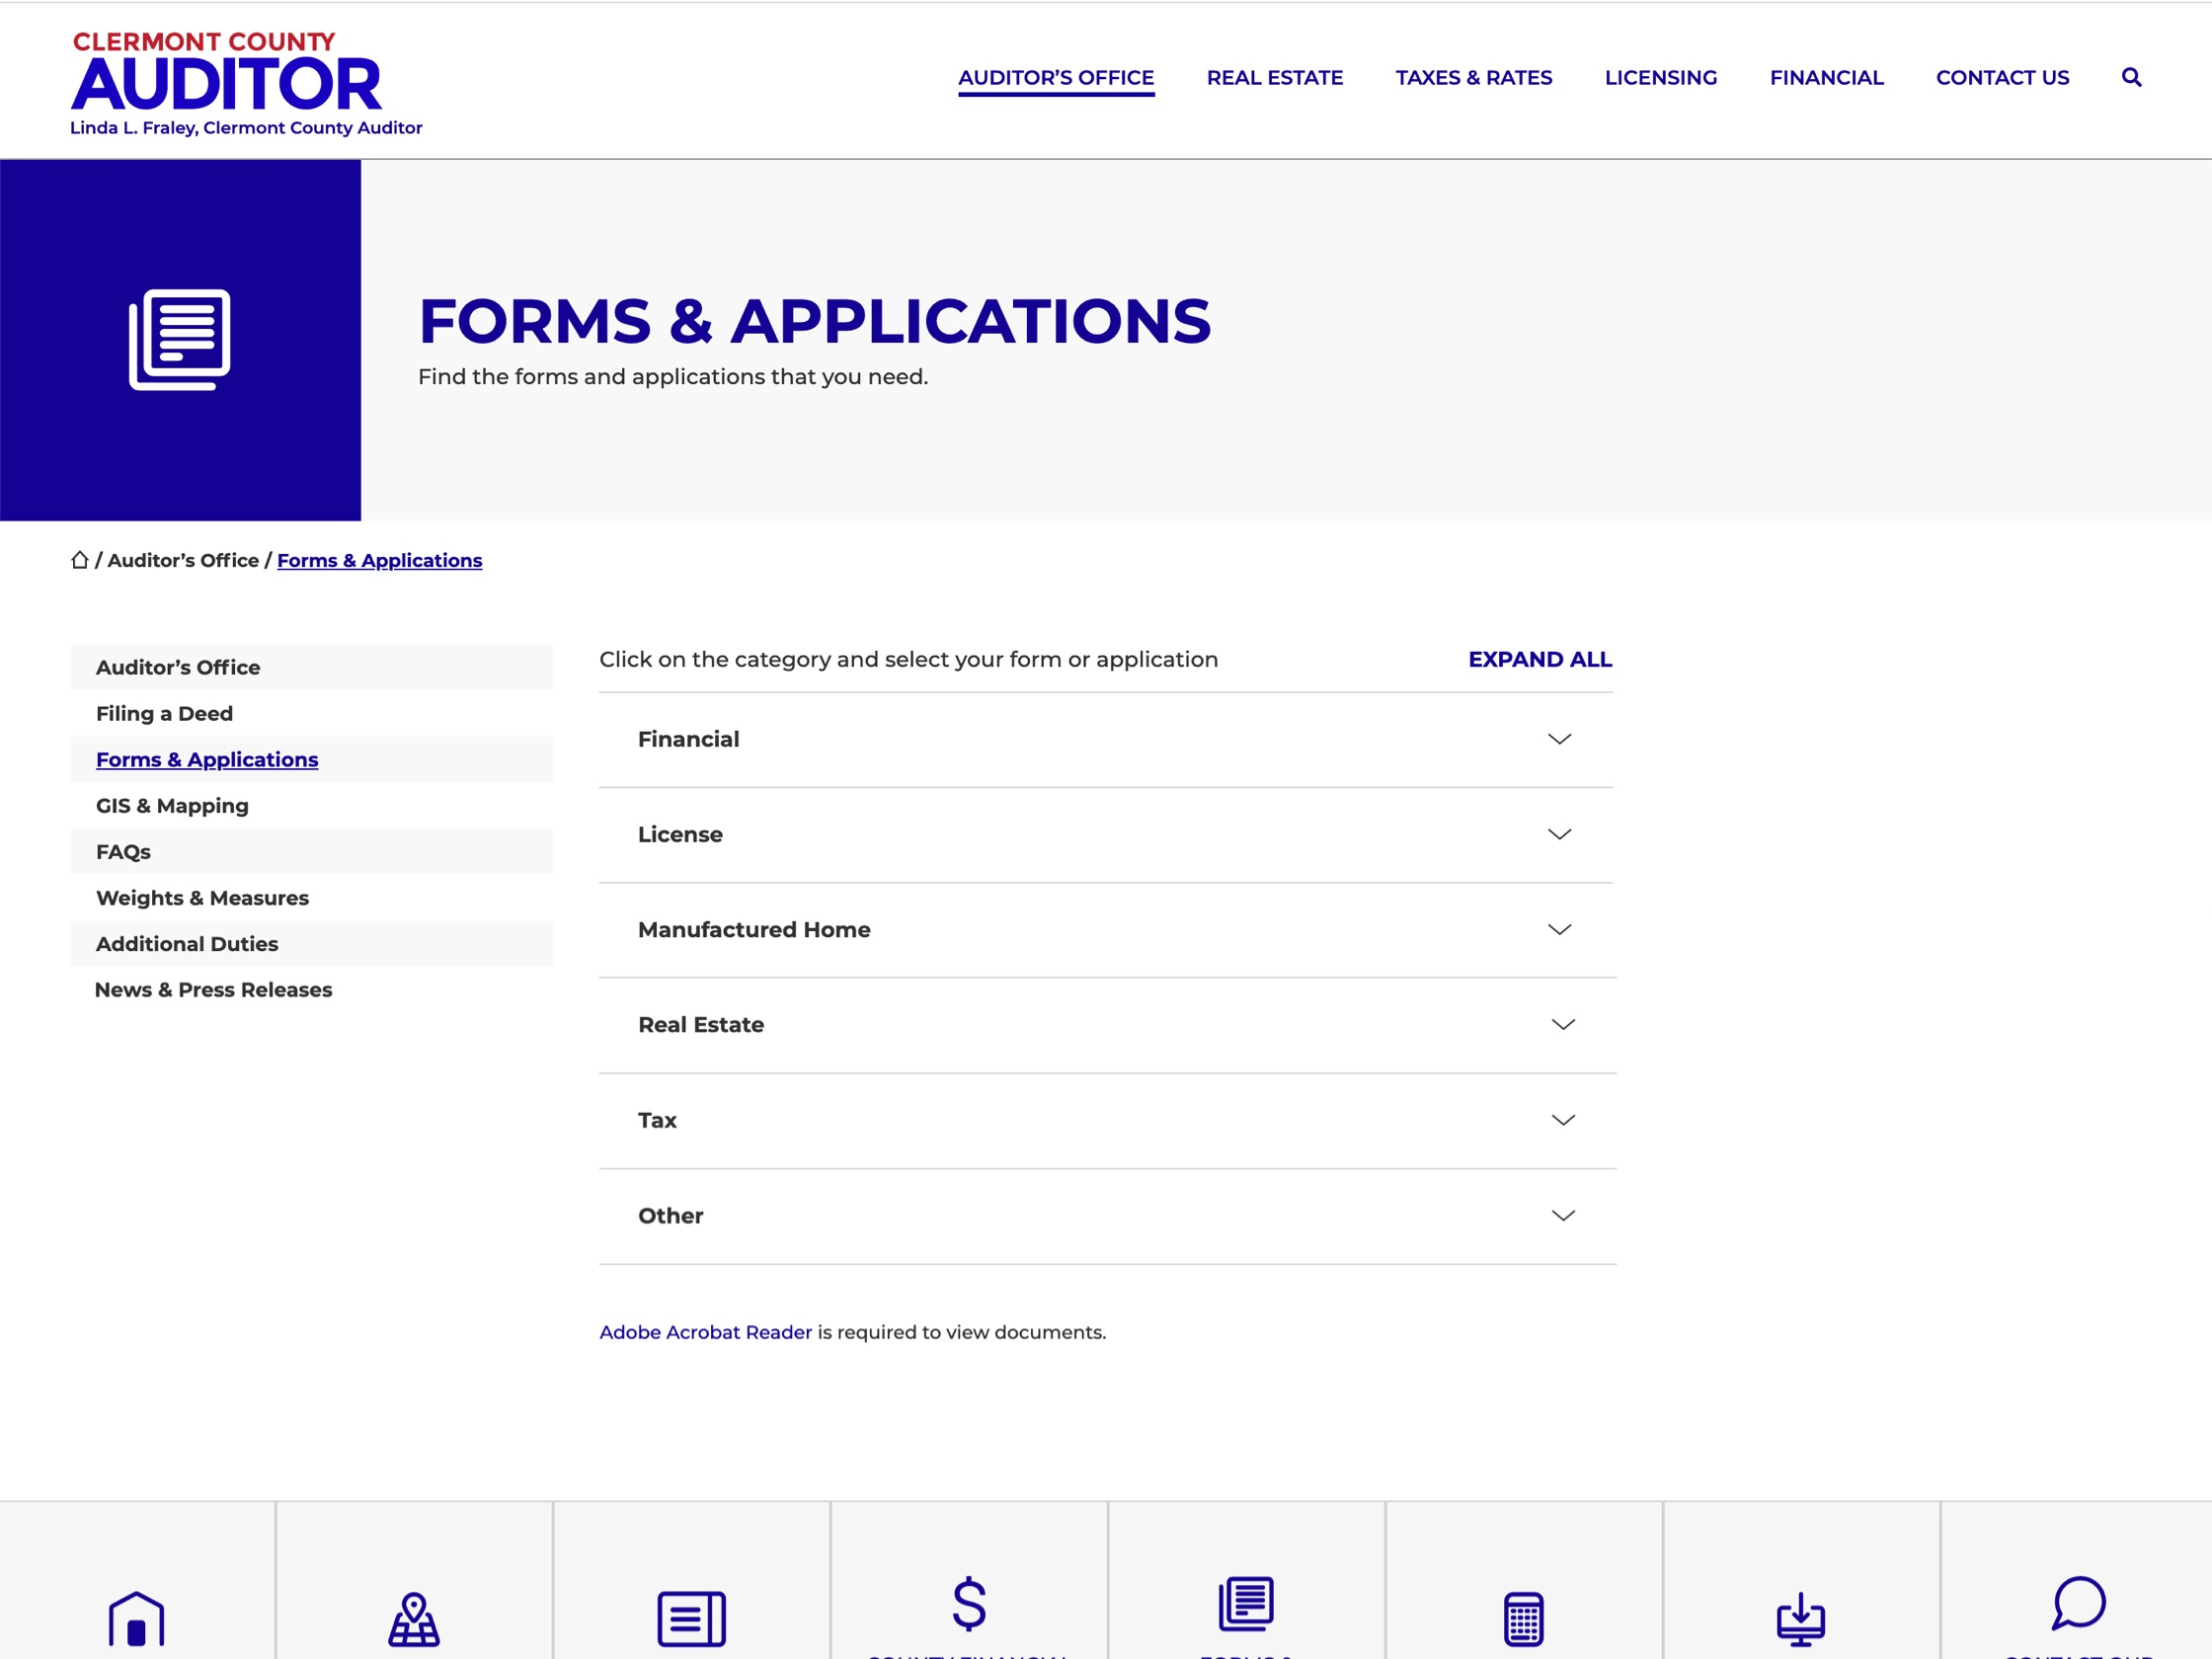 Clermont County Auditor's Forms and Applications library page